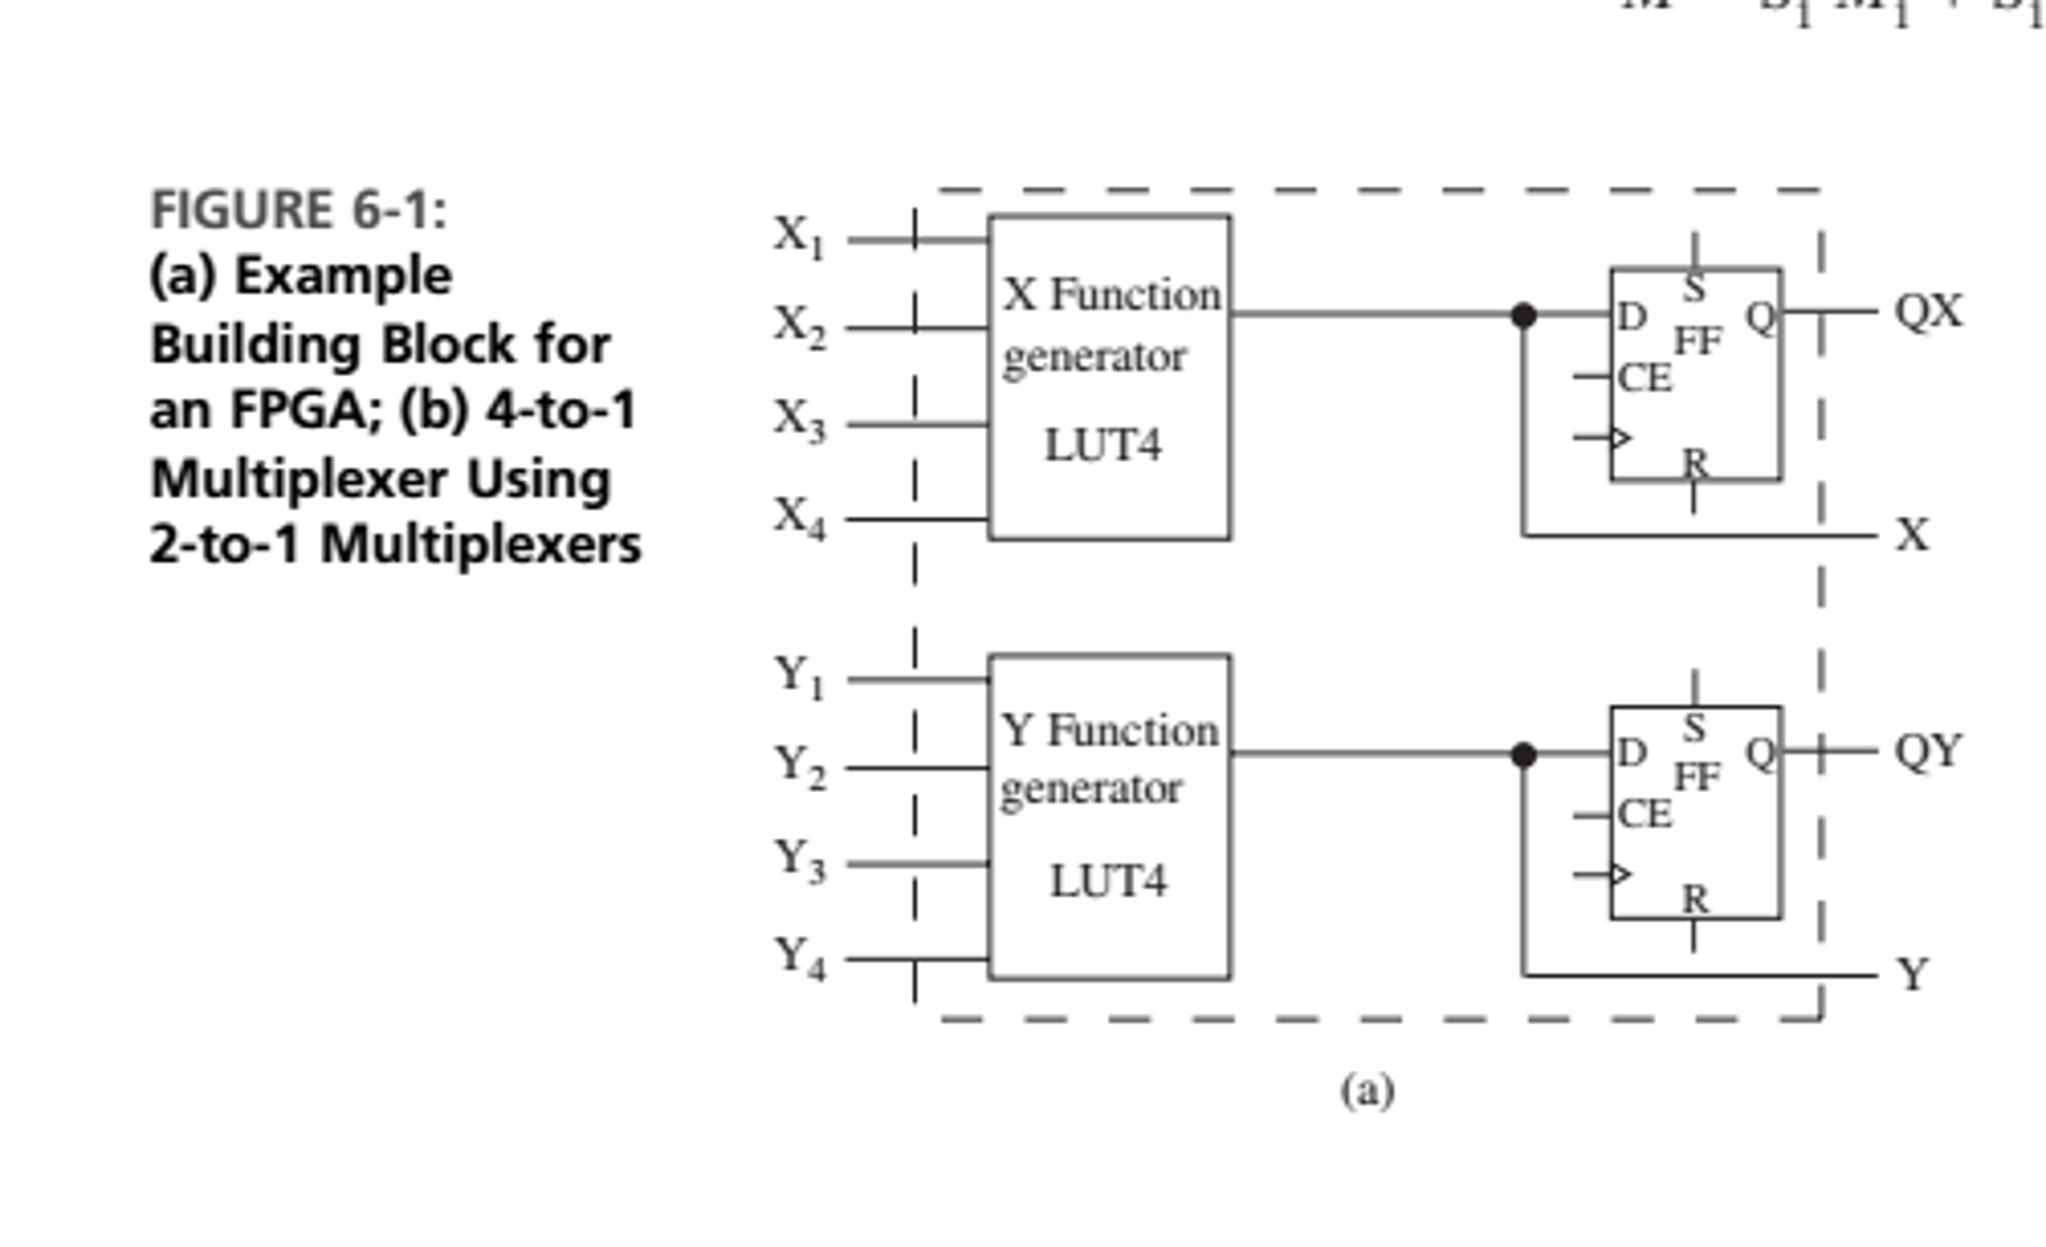 see more Show transcribed image text How many logic blocks are required to  create a 4-to-16 decoder? Give the contents of the LUTs in the first logic  block.